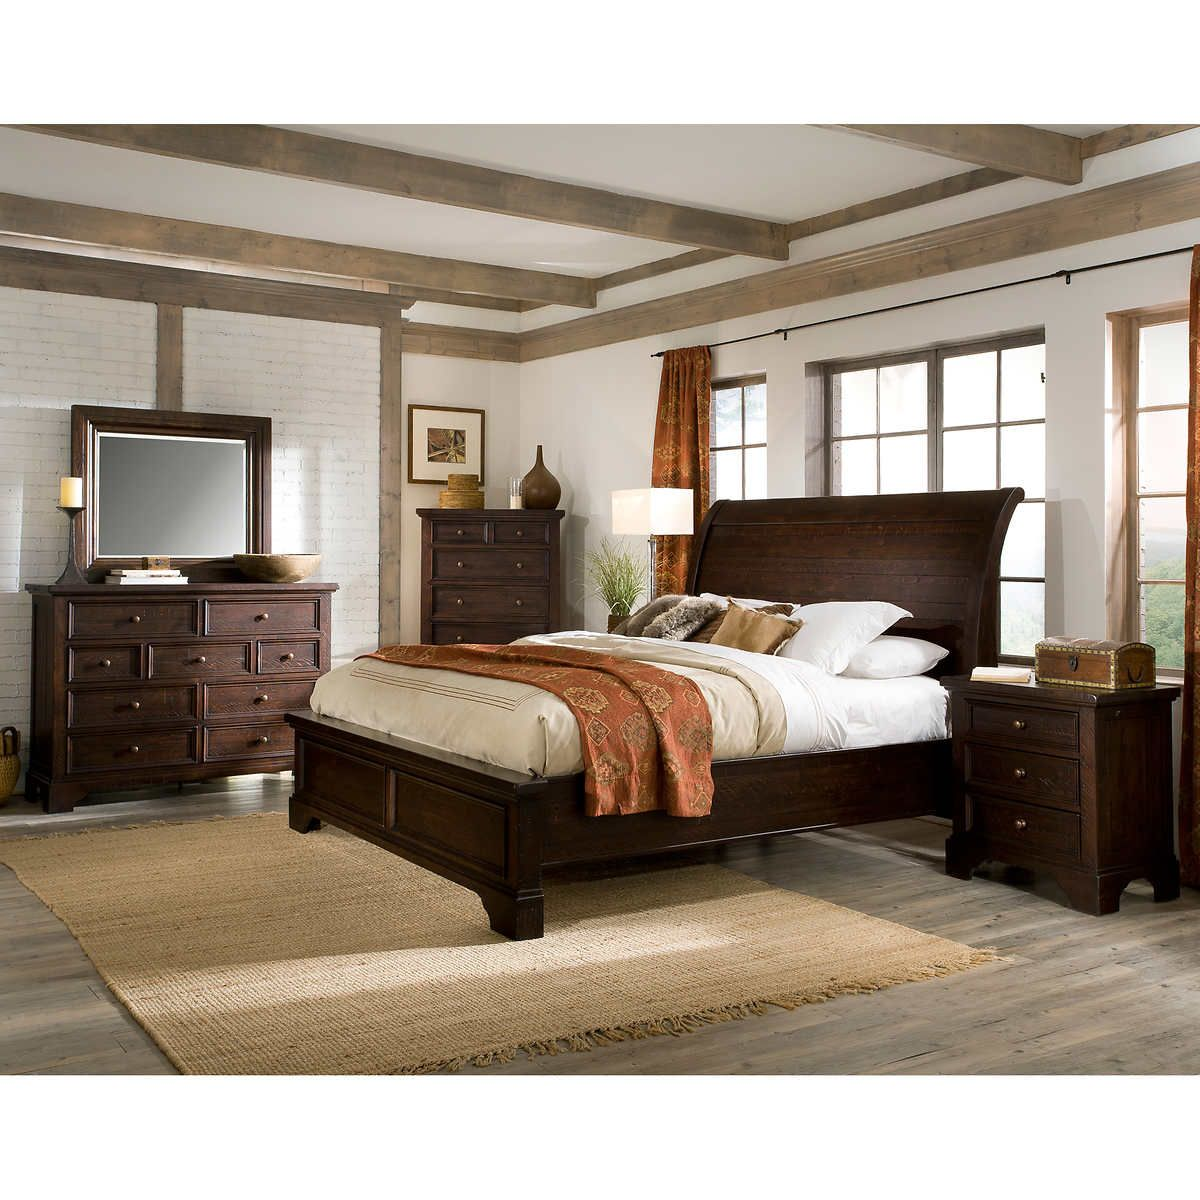 costco bedroom furniture king best furniture gallery check more at